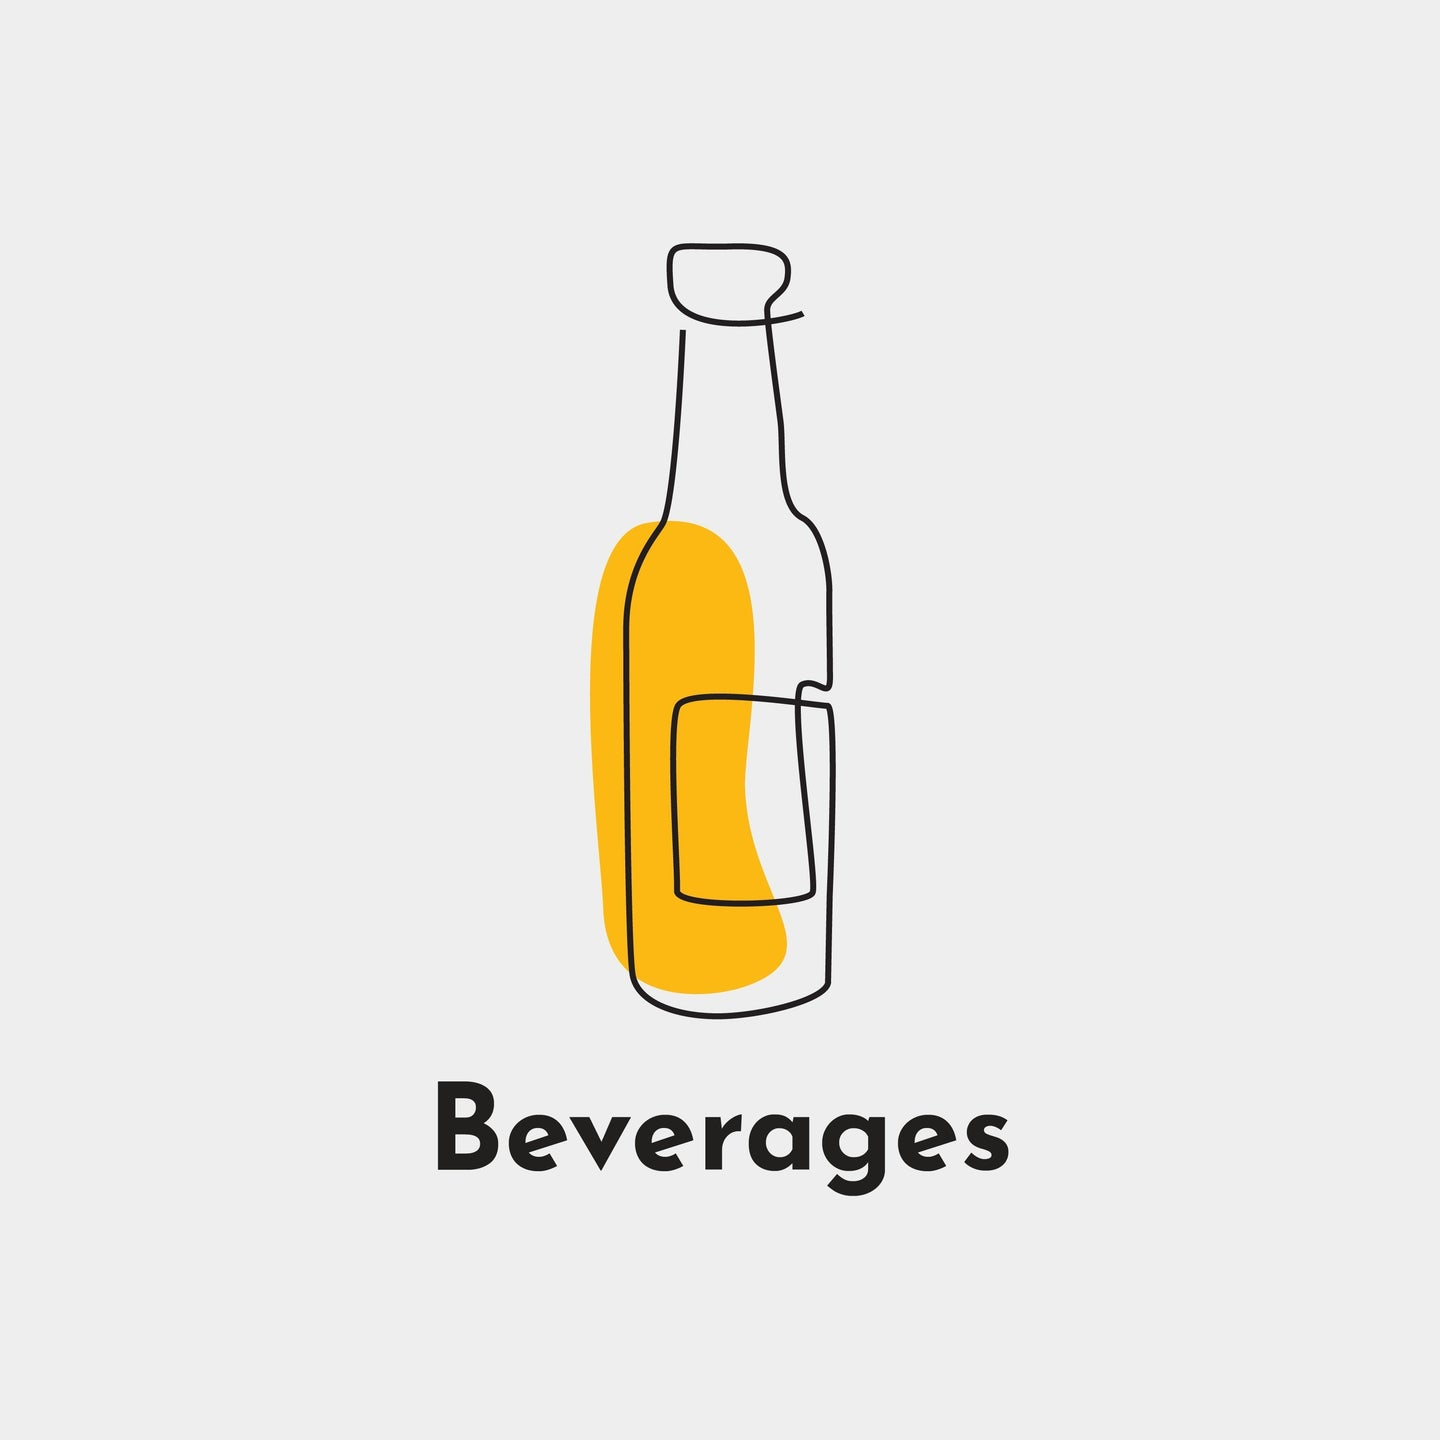 Beverages | vvjustitalian